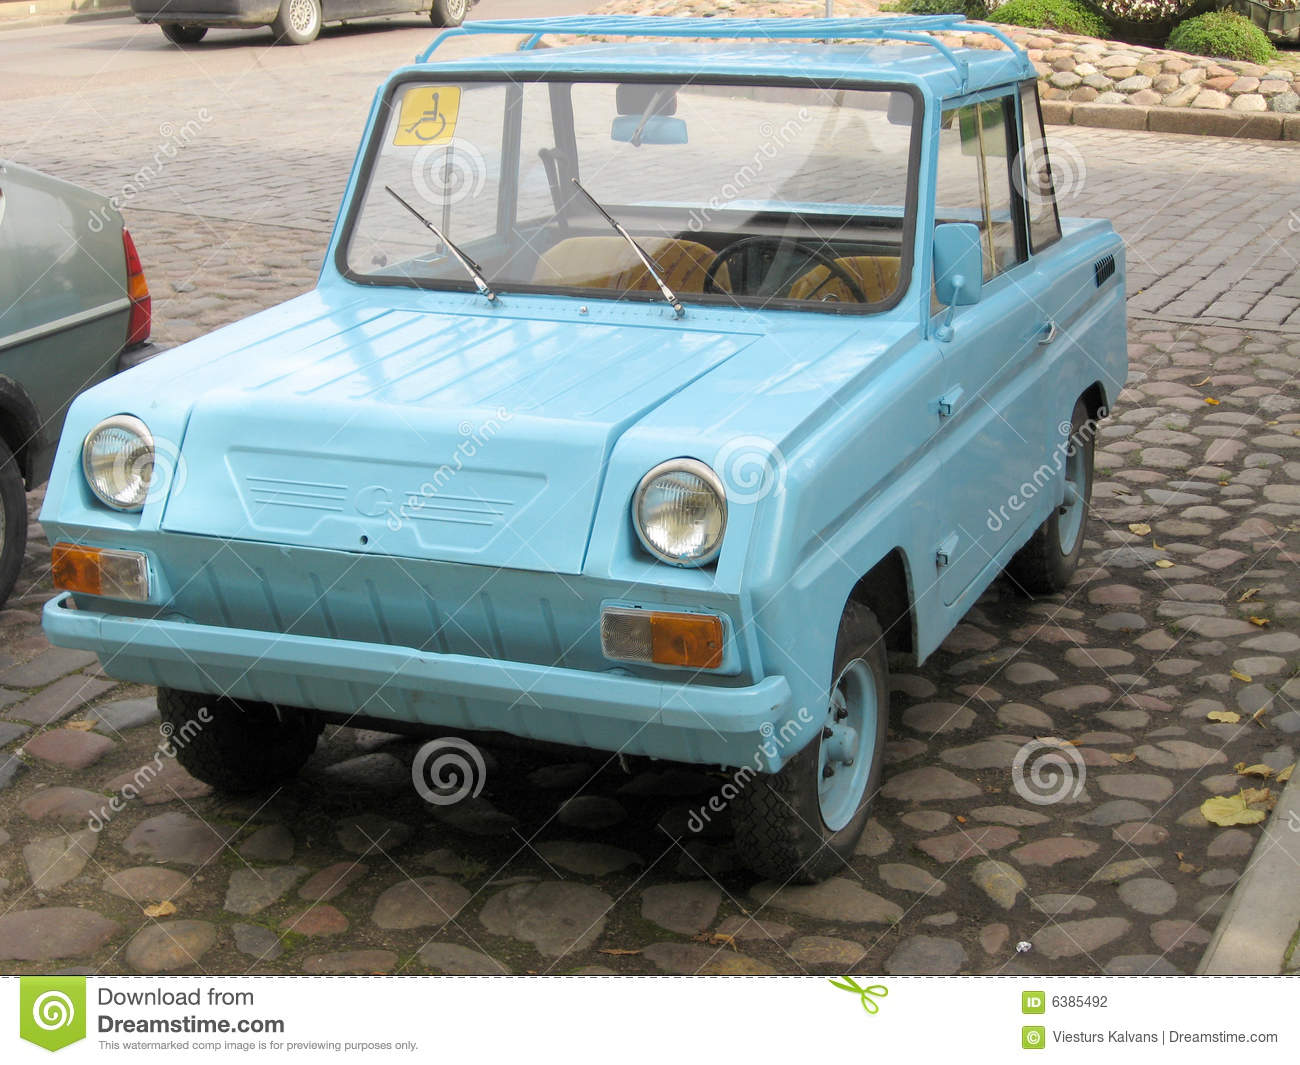 Disabled person car stock photo. Image of soviet, russian - 6385492